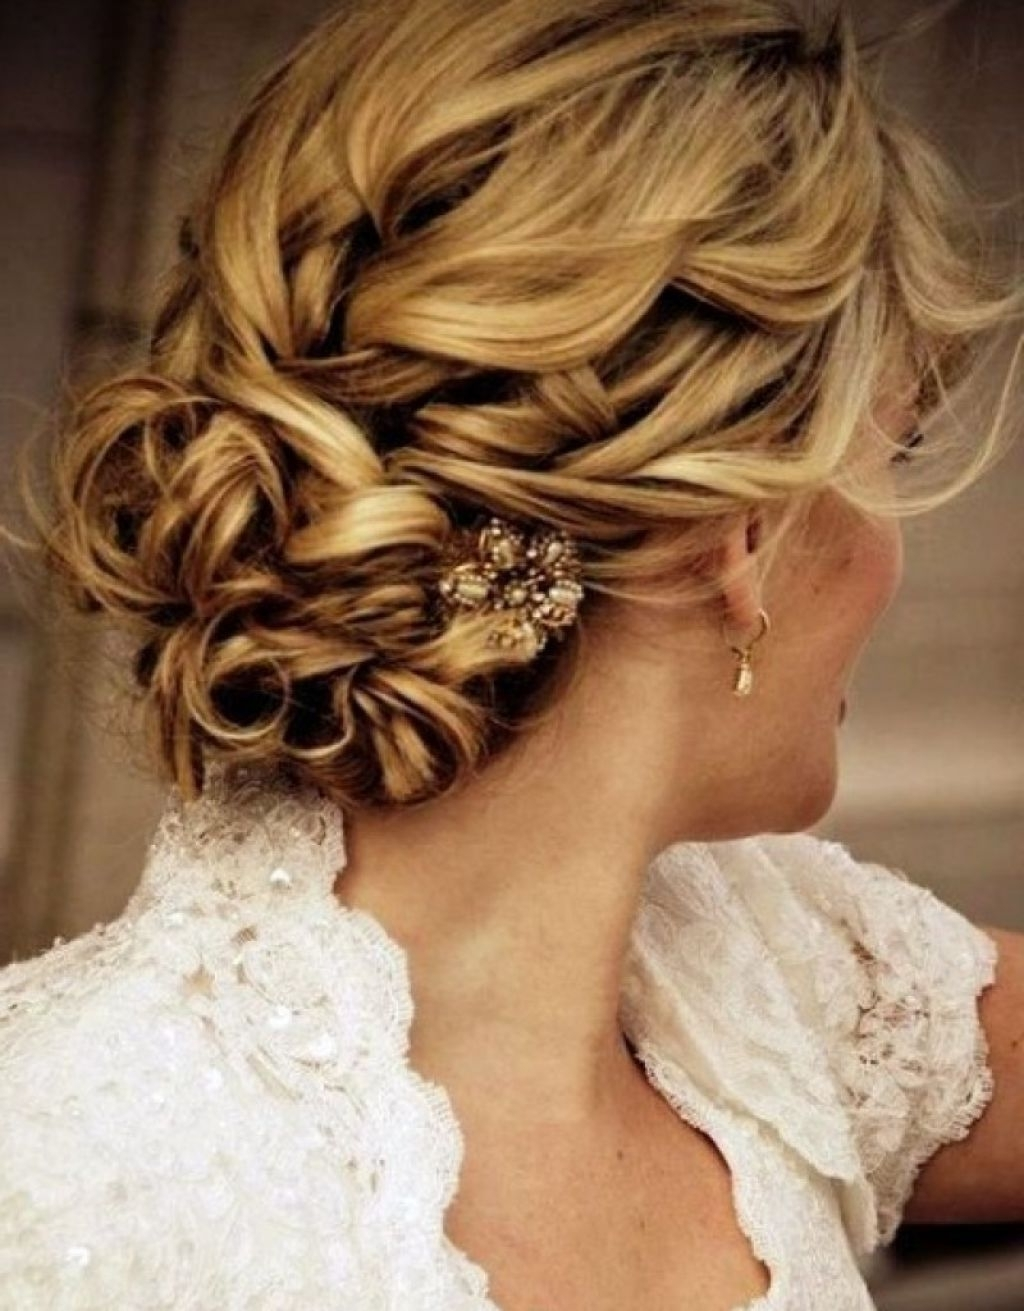 Best And Newest Cute Wedding Hairstyles For Bridesmaids Inside √ 24+ Inspirational Bridesmaid Hairstyles For Medium Hair: Cute (View 1 of 15)